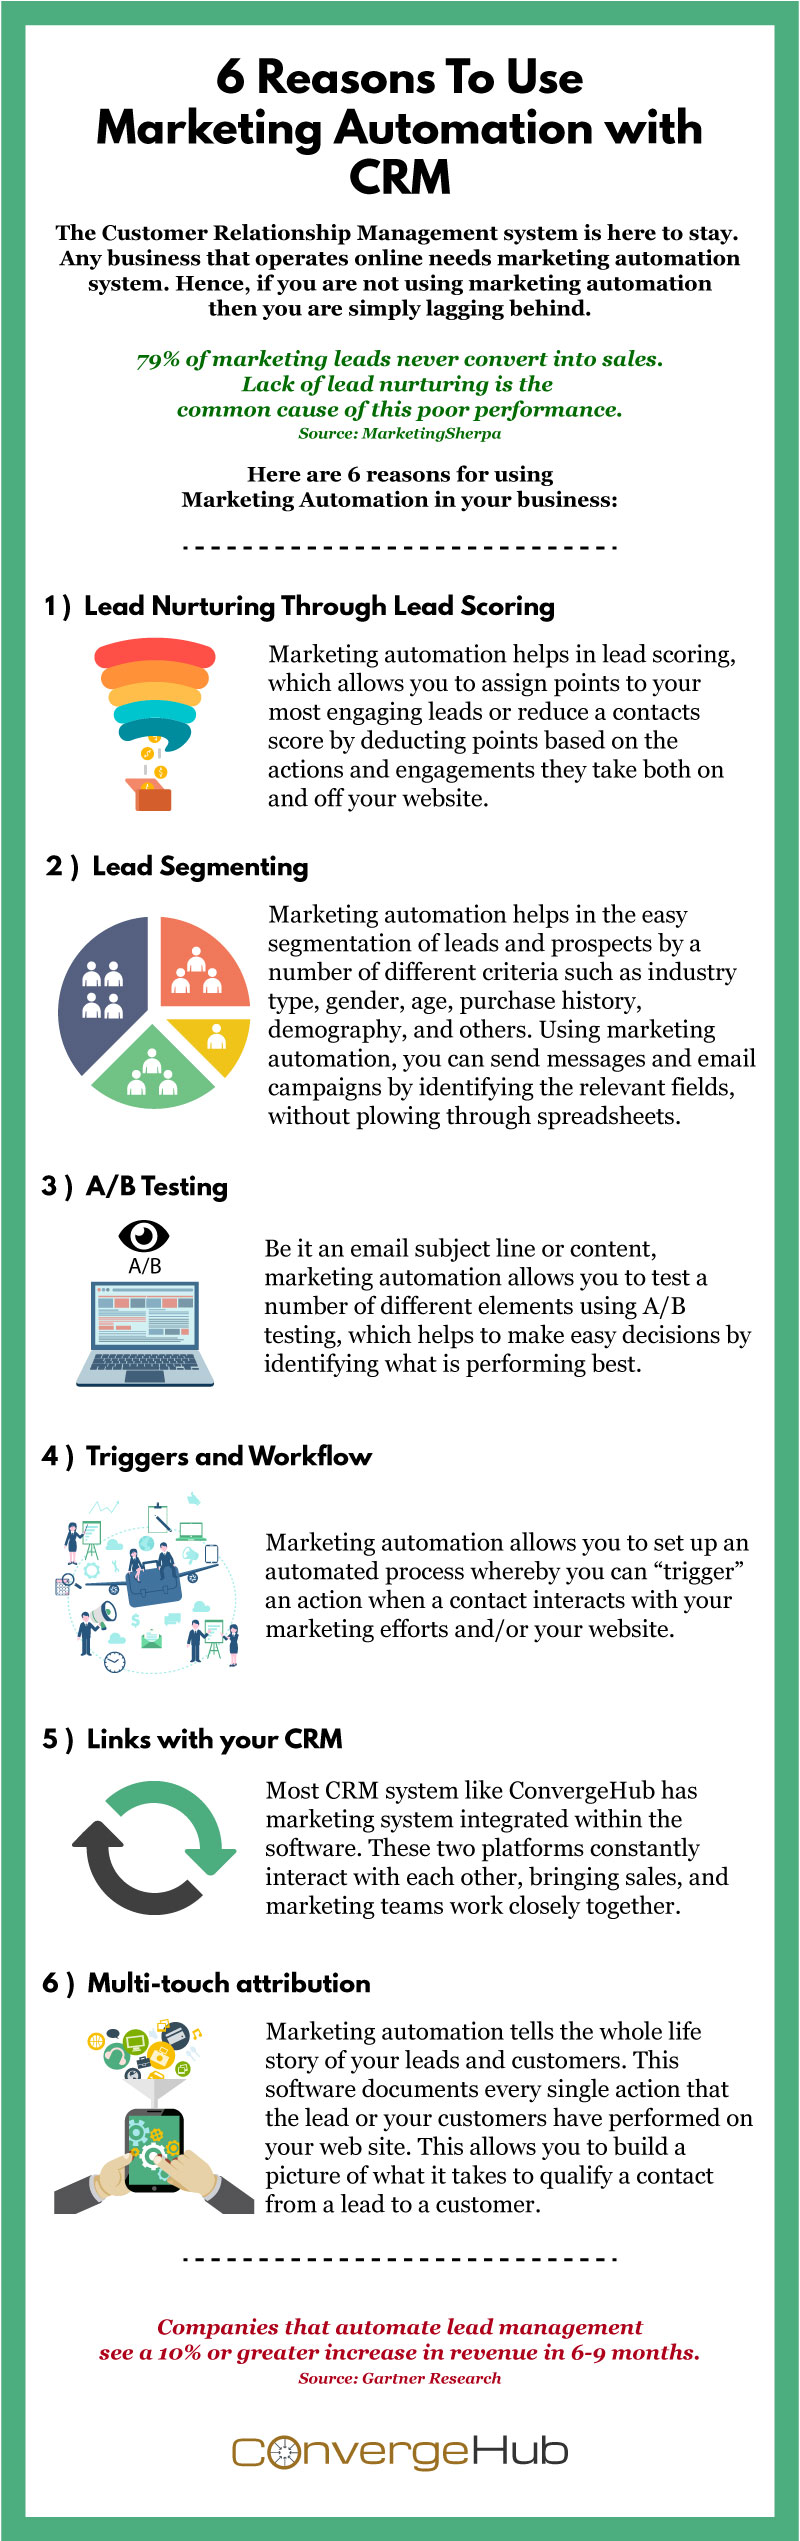 Infographic-6Reasons To Use Marketing Automation with CRM